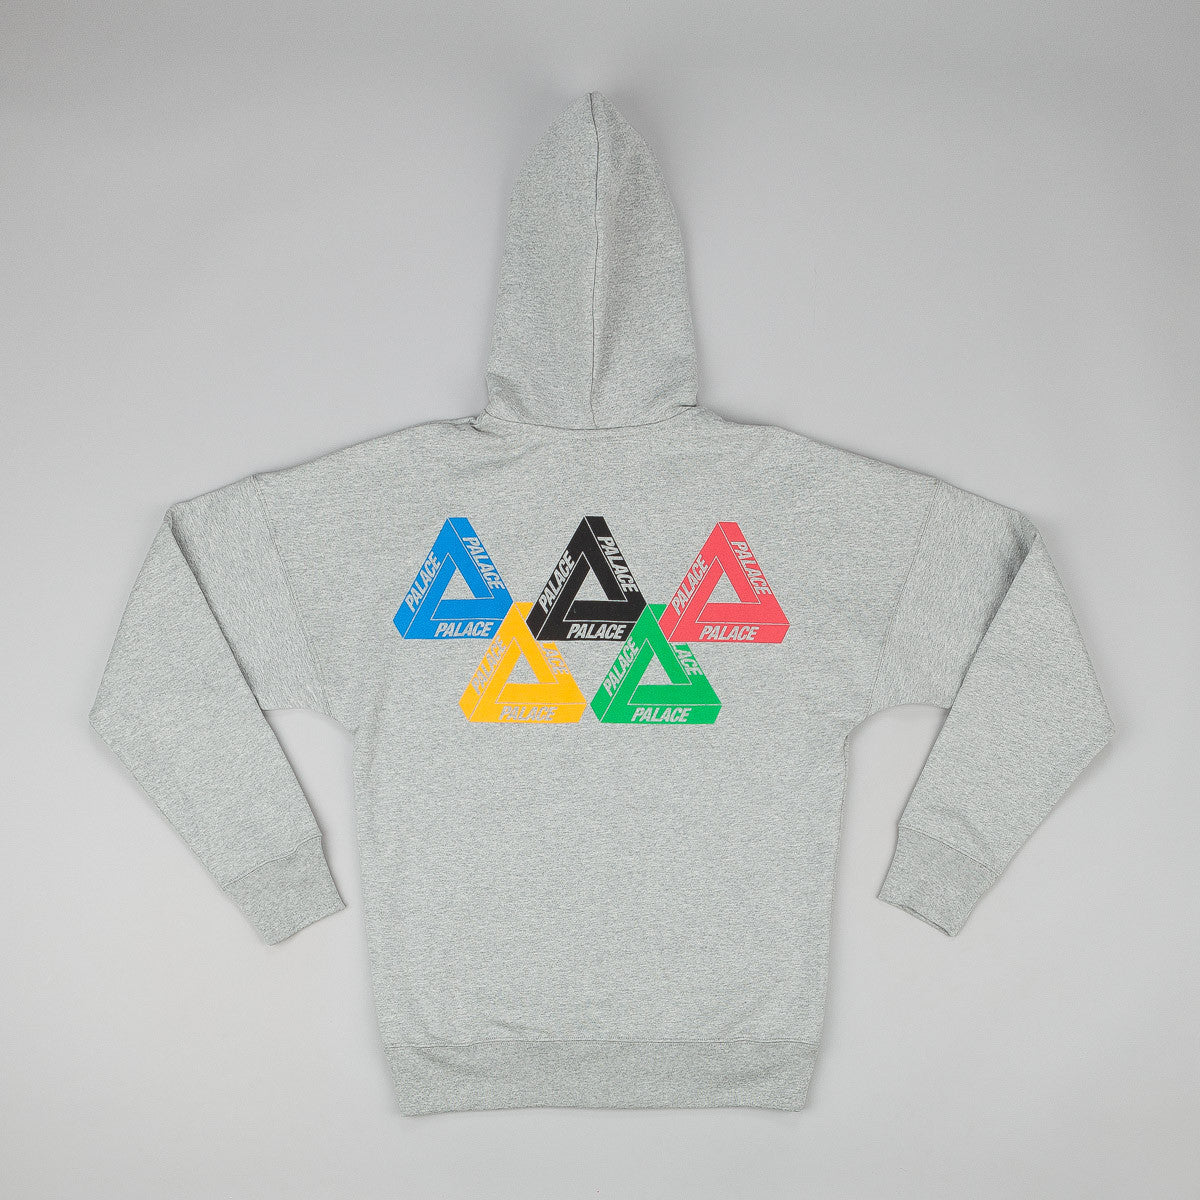 Palace Zip Olympic Hooded Sweatshirt - Grey